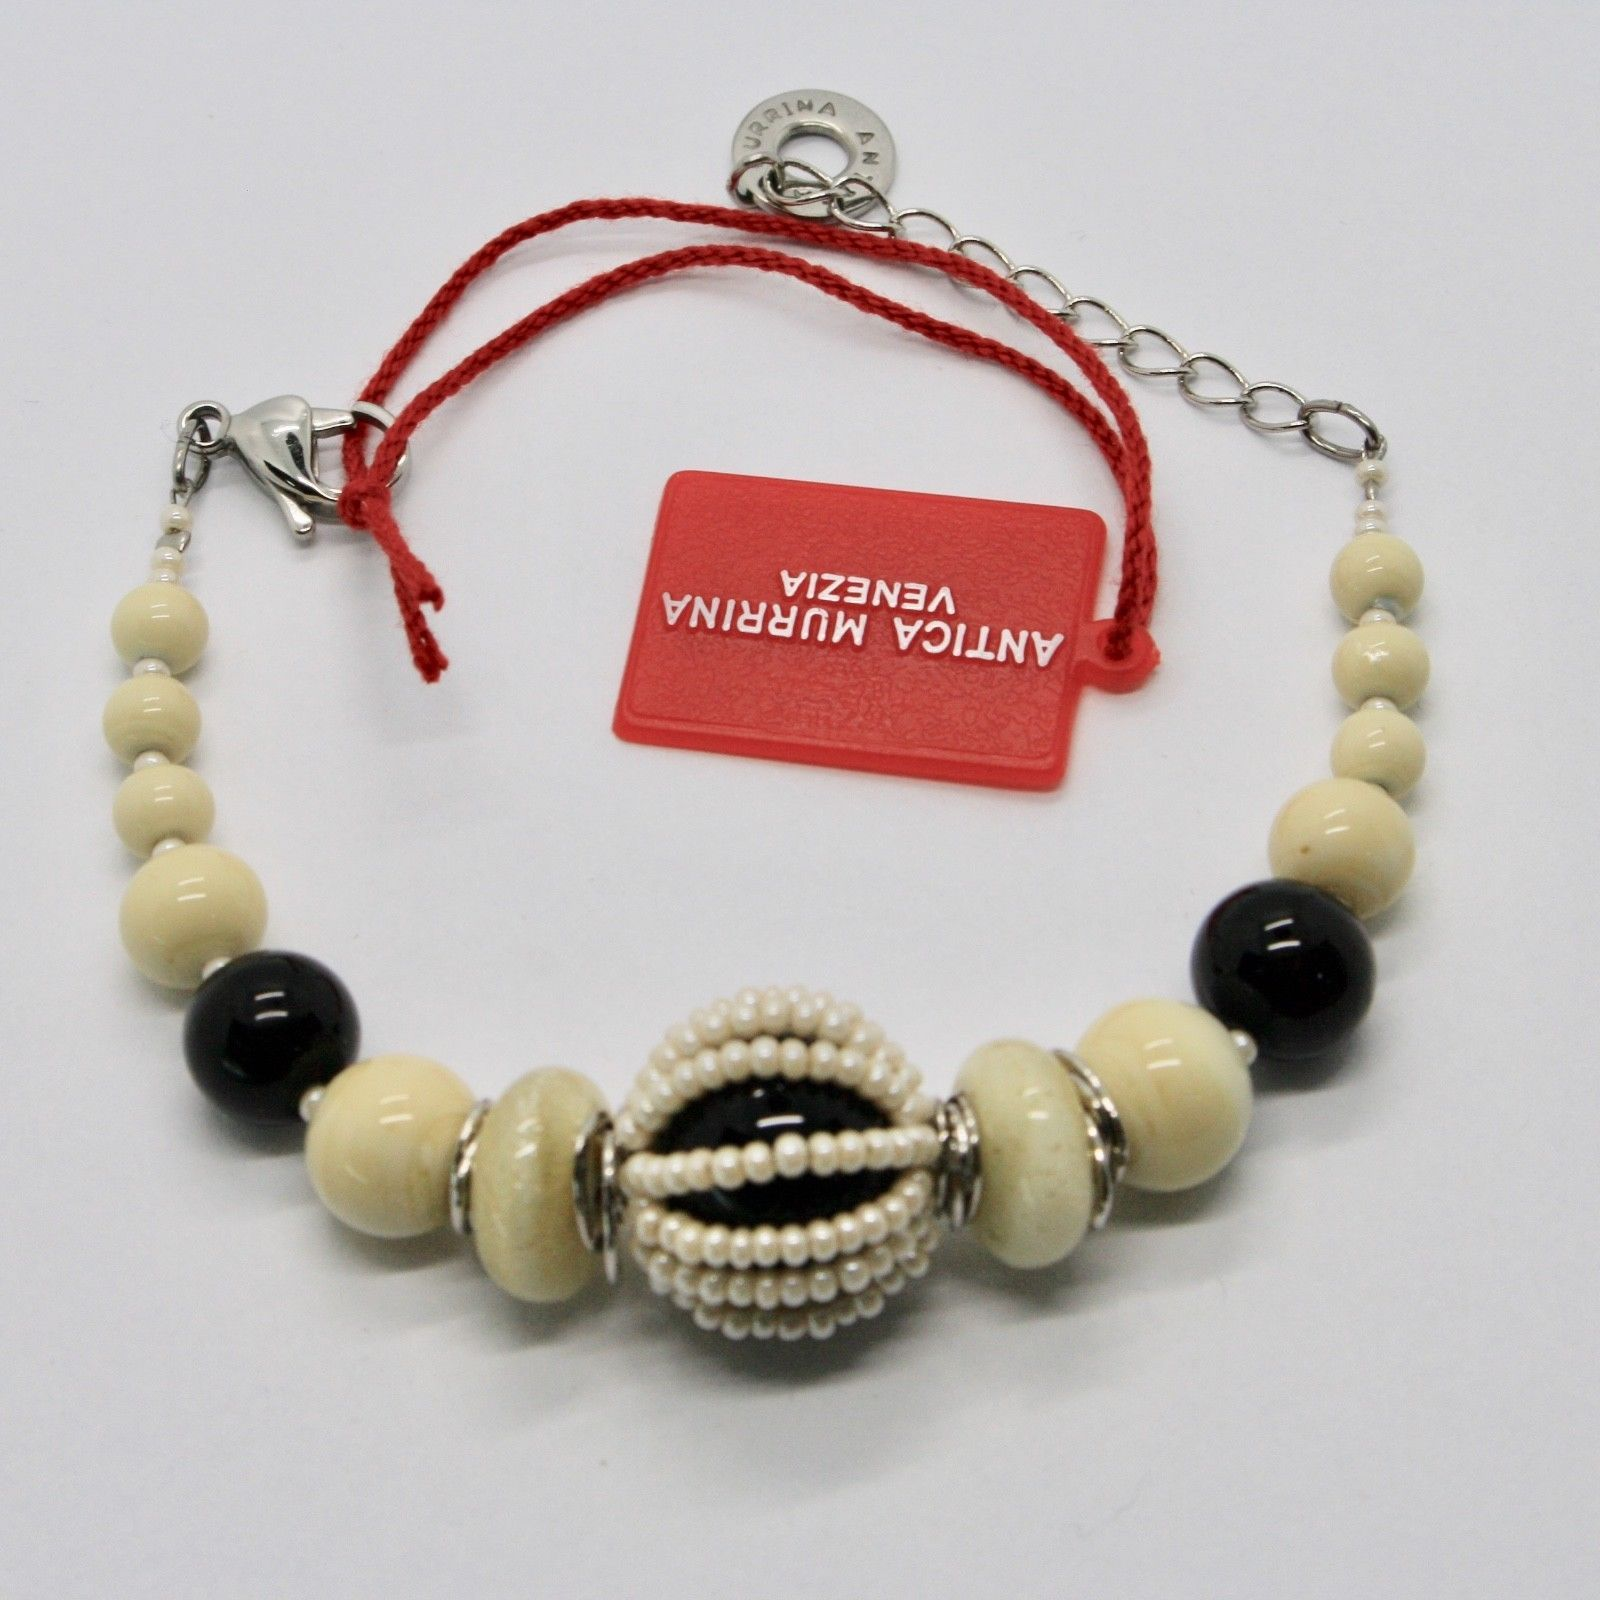 BRACELET ANTICA MURRINA VENEZIA WITH MURANO GLASS BLACK CREAM BEIGE BR742A02